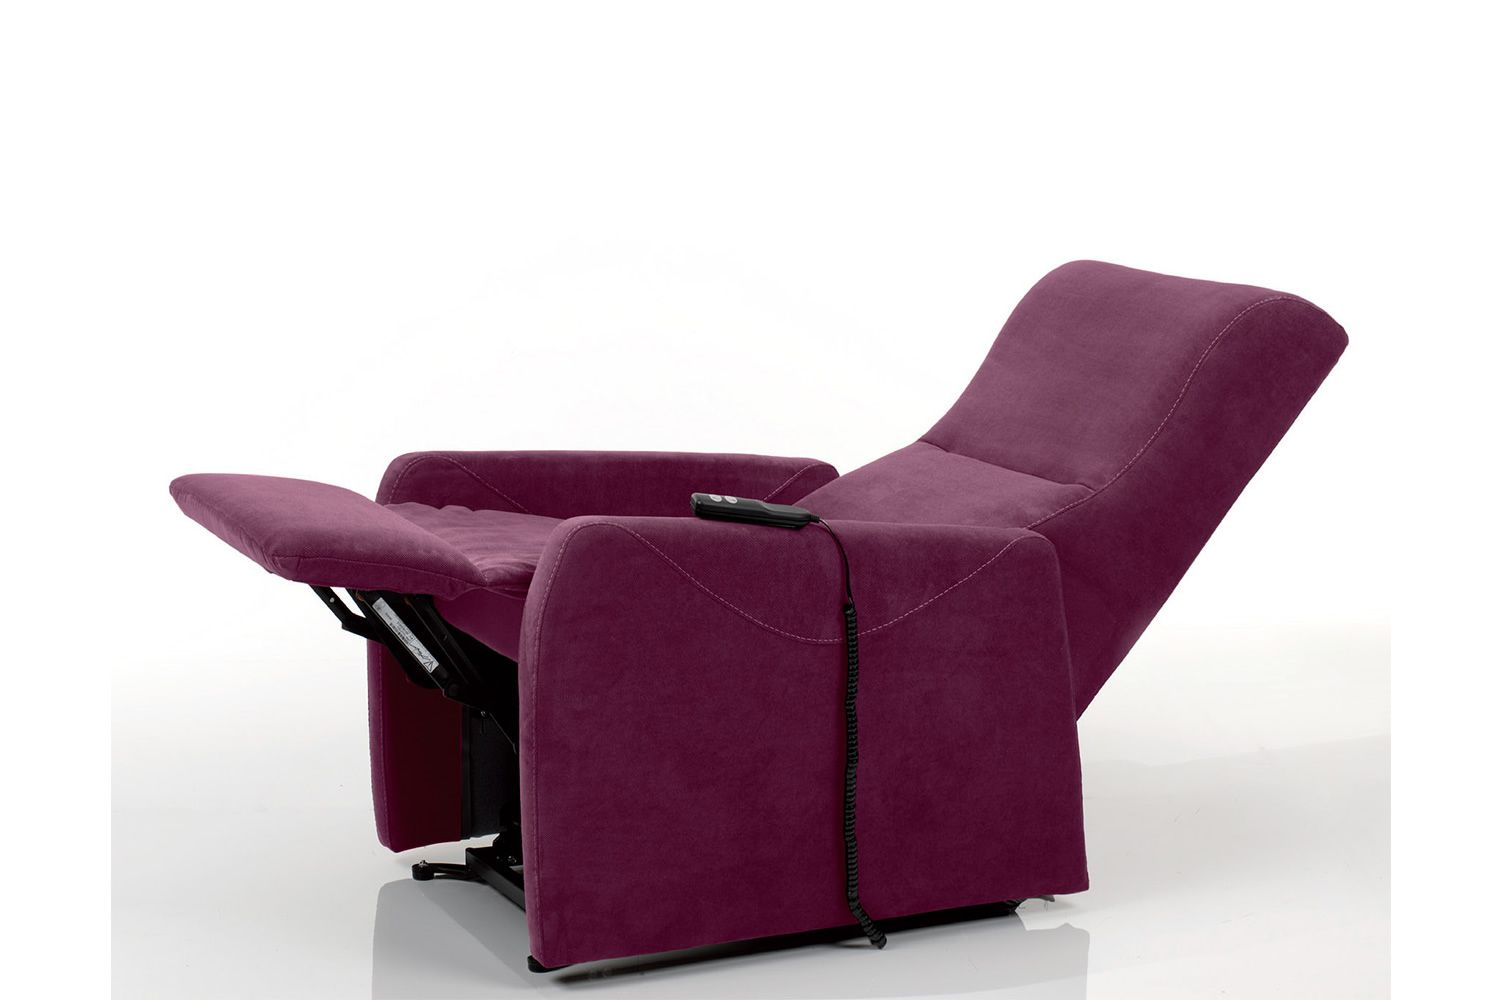 Electric and adjustable relax armchair with Lift mechanism, different upholsteries and colours available, totally removable covering, also with Roller system and massage kit